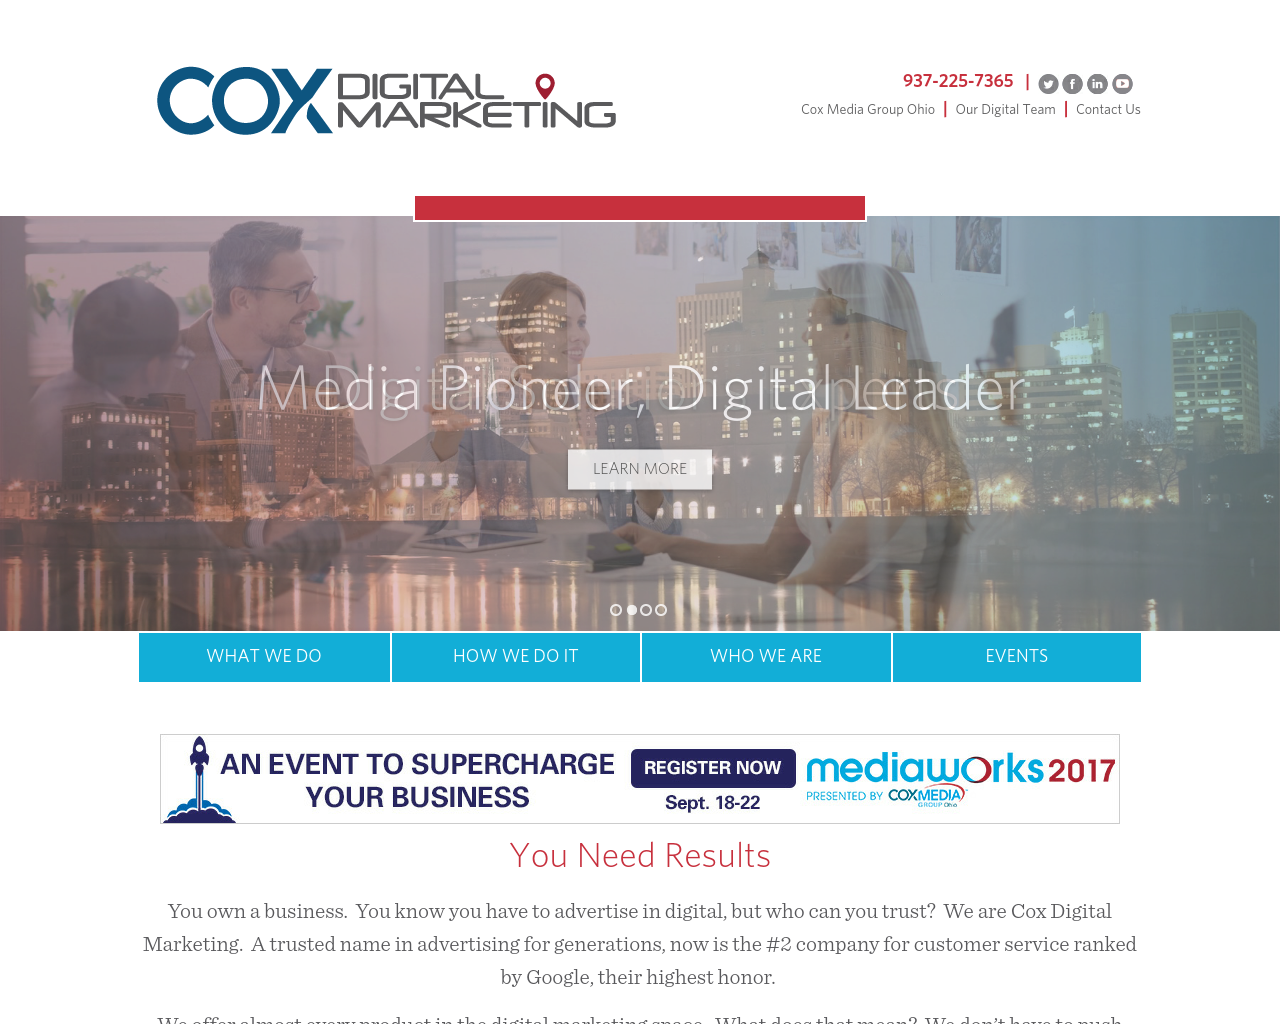 Cox-Digital-Marketing-Advertising-Reviews-Pricing